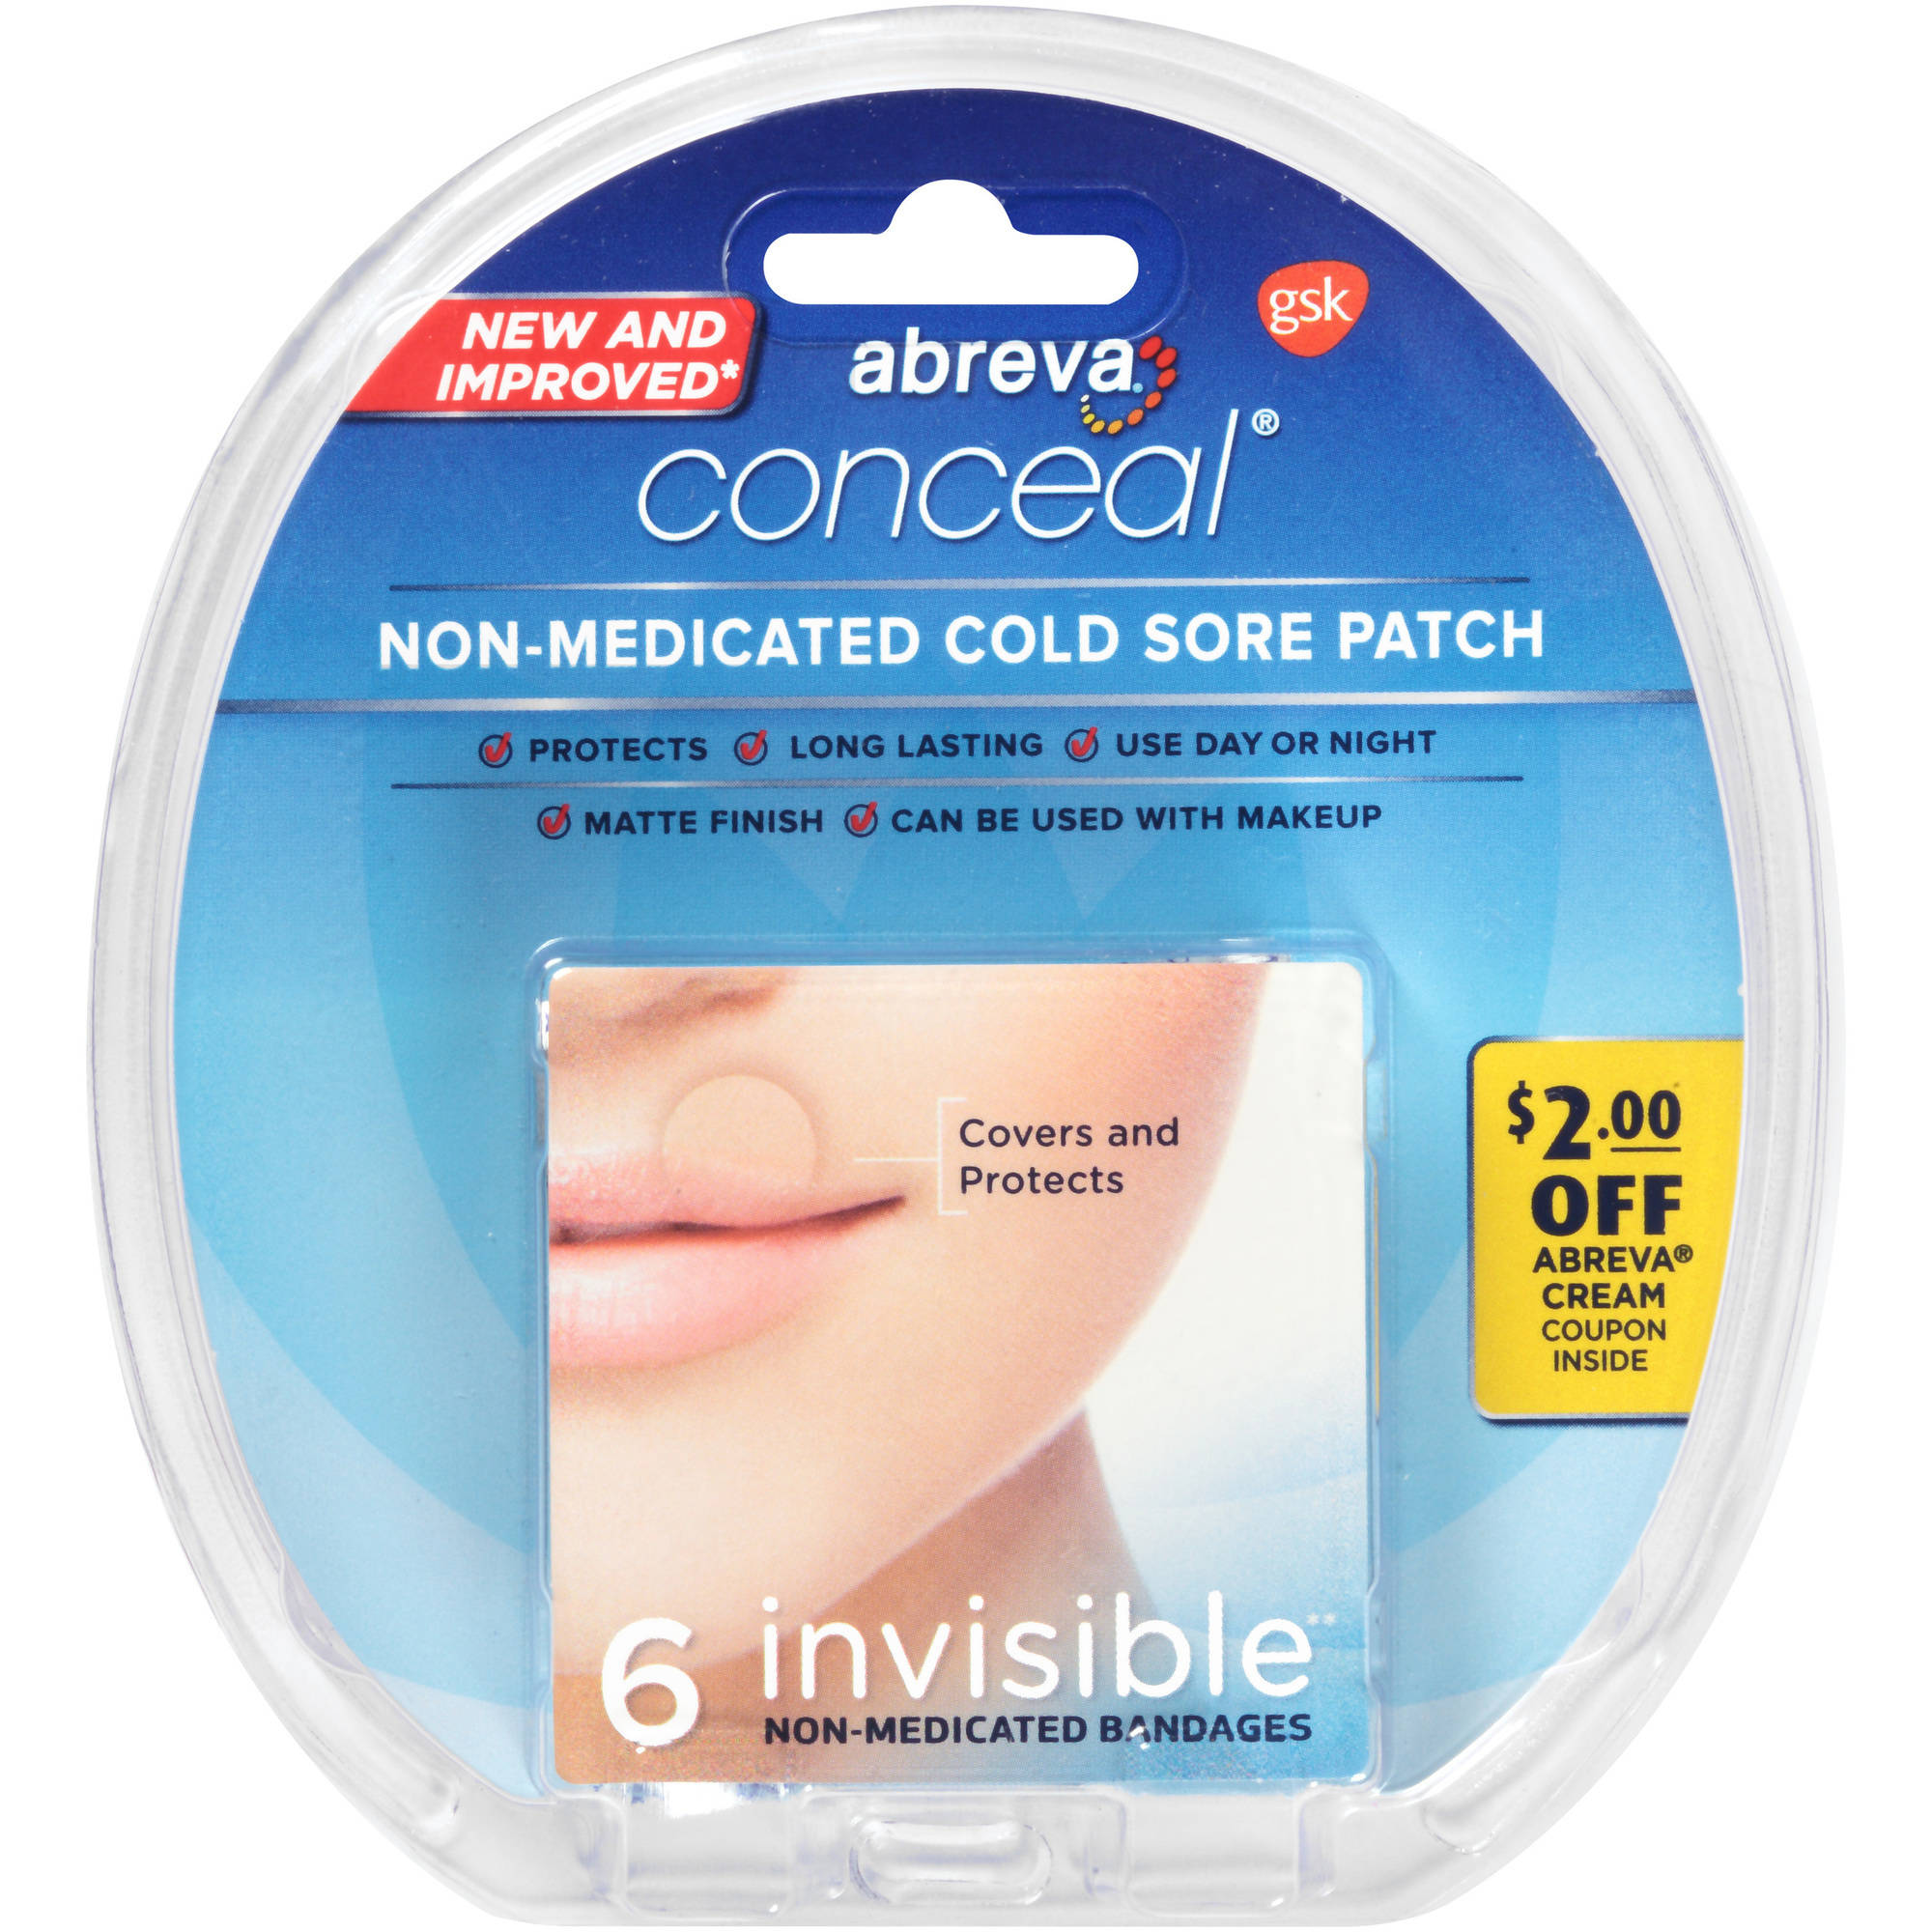 Abreva FDA-Approved Cold Sore Treatment, Conceal Invisible Patch, 6 Patches